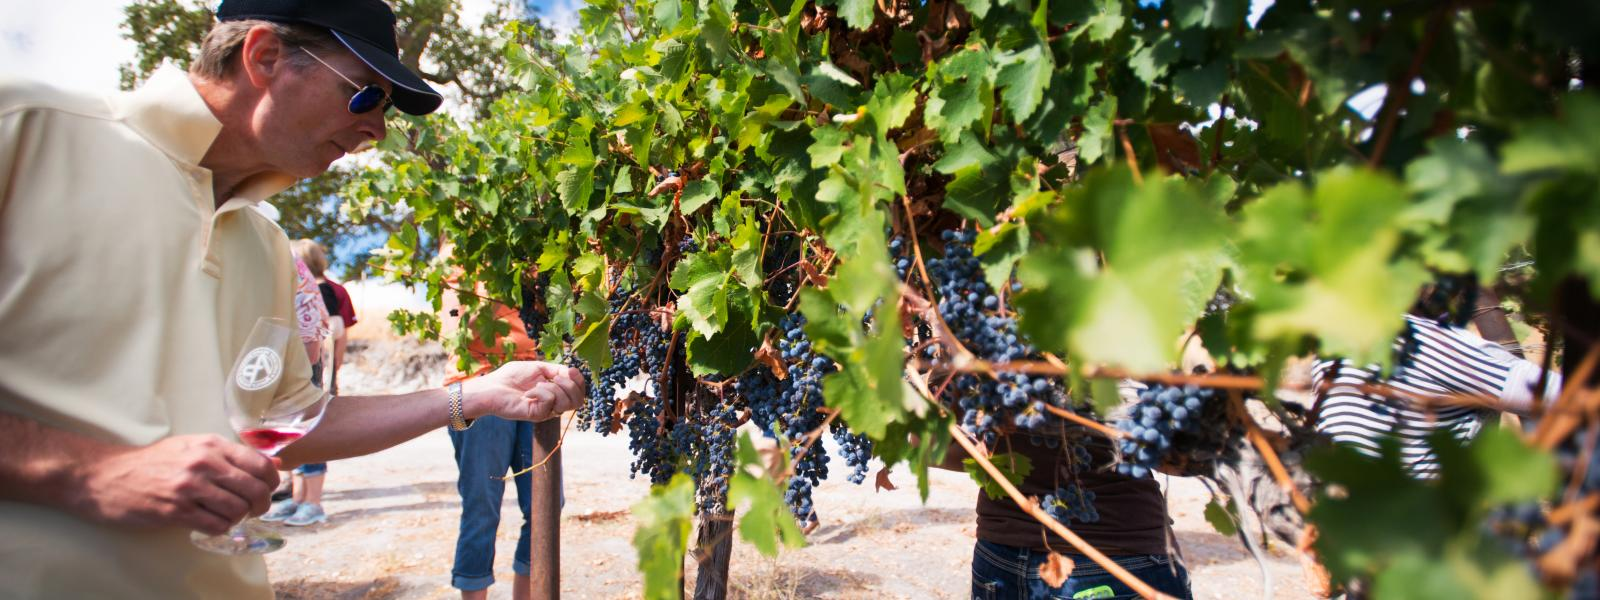 A man picking grapes at SLO Cal vineyard